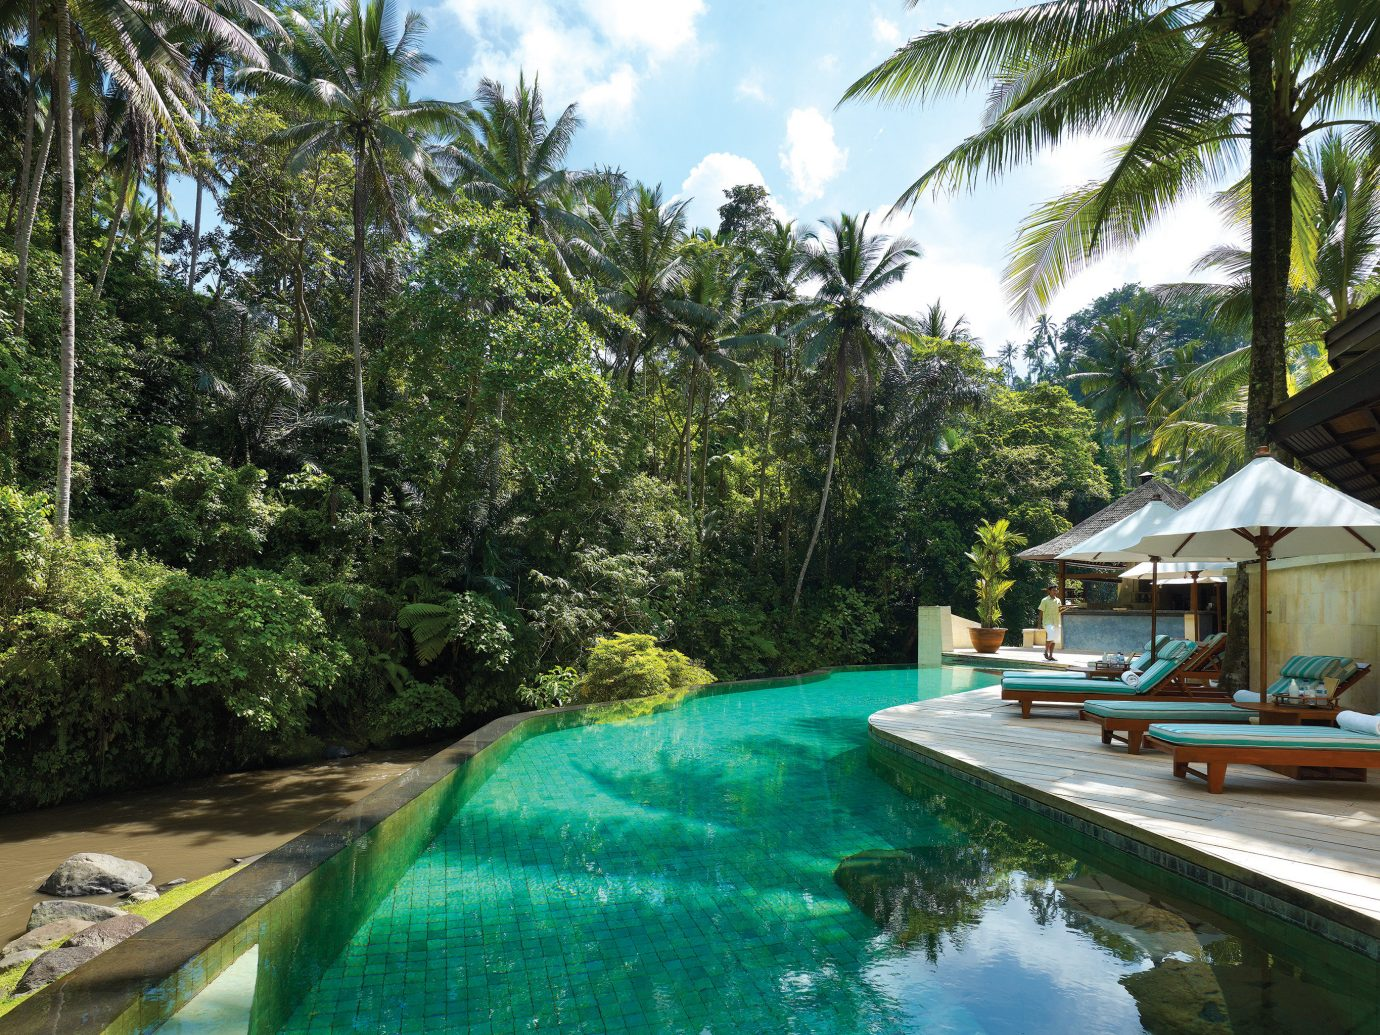 Health + Wellness Honeymoon Hotels Jungle Luxury Pool Style + Design tree outdoor water swimming pool leisure property Resort vacation estate backyard Villa tropics plant traveling pond Forest surrounded